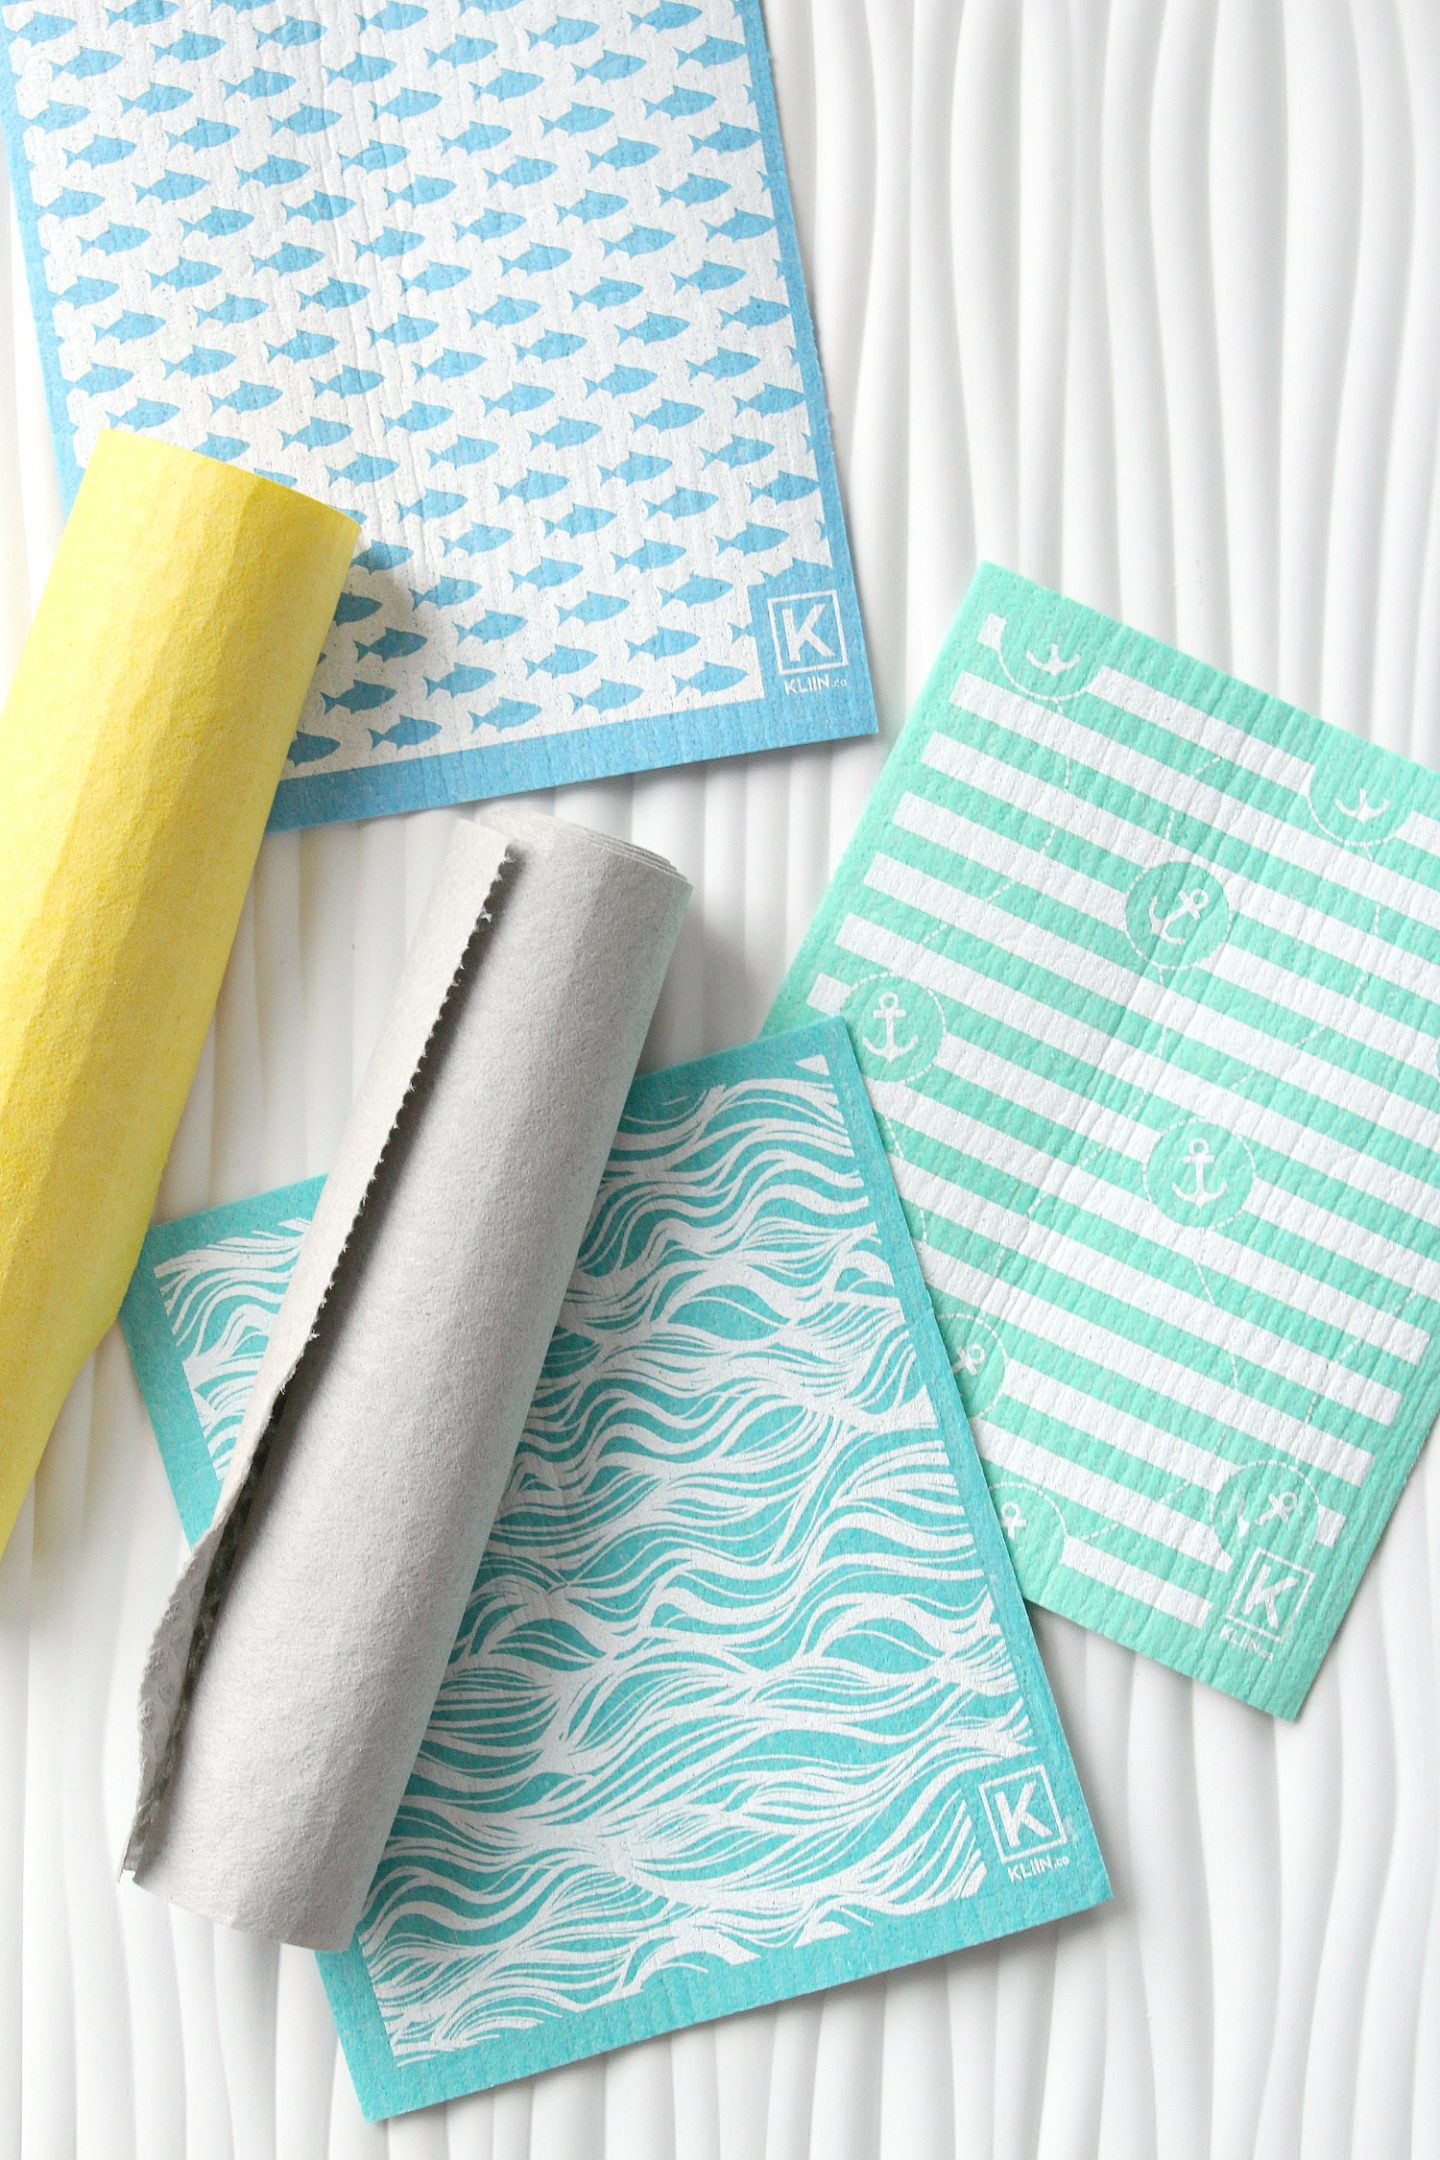 Bunkie Styling with KLIIN - The Best Paper Towel Alternative. Eco-friendly, Compostable Dish Cloths and Cleaning Cloths.